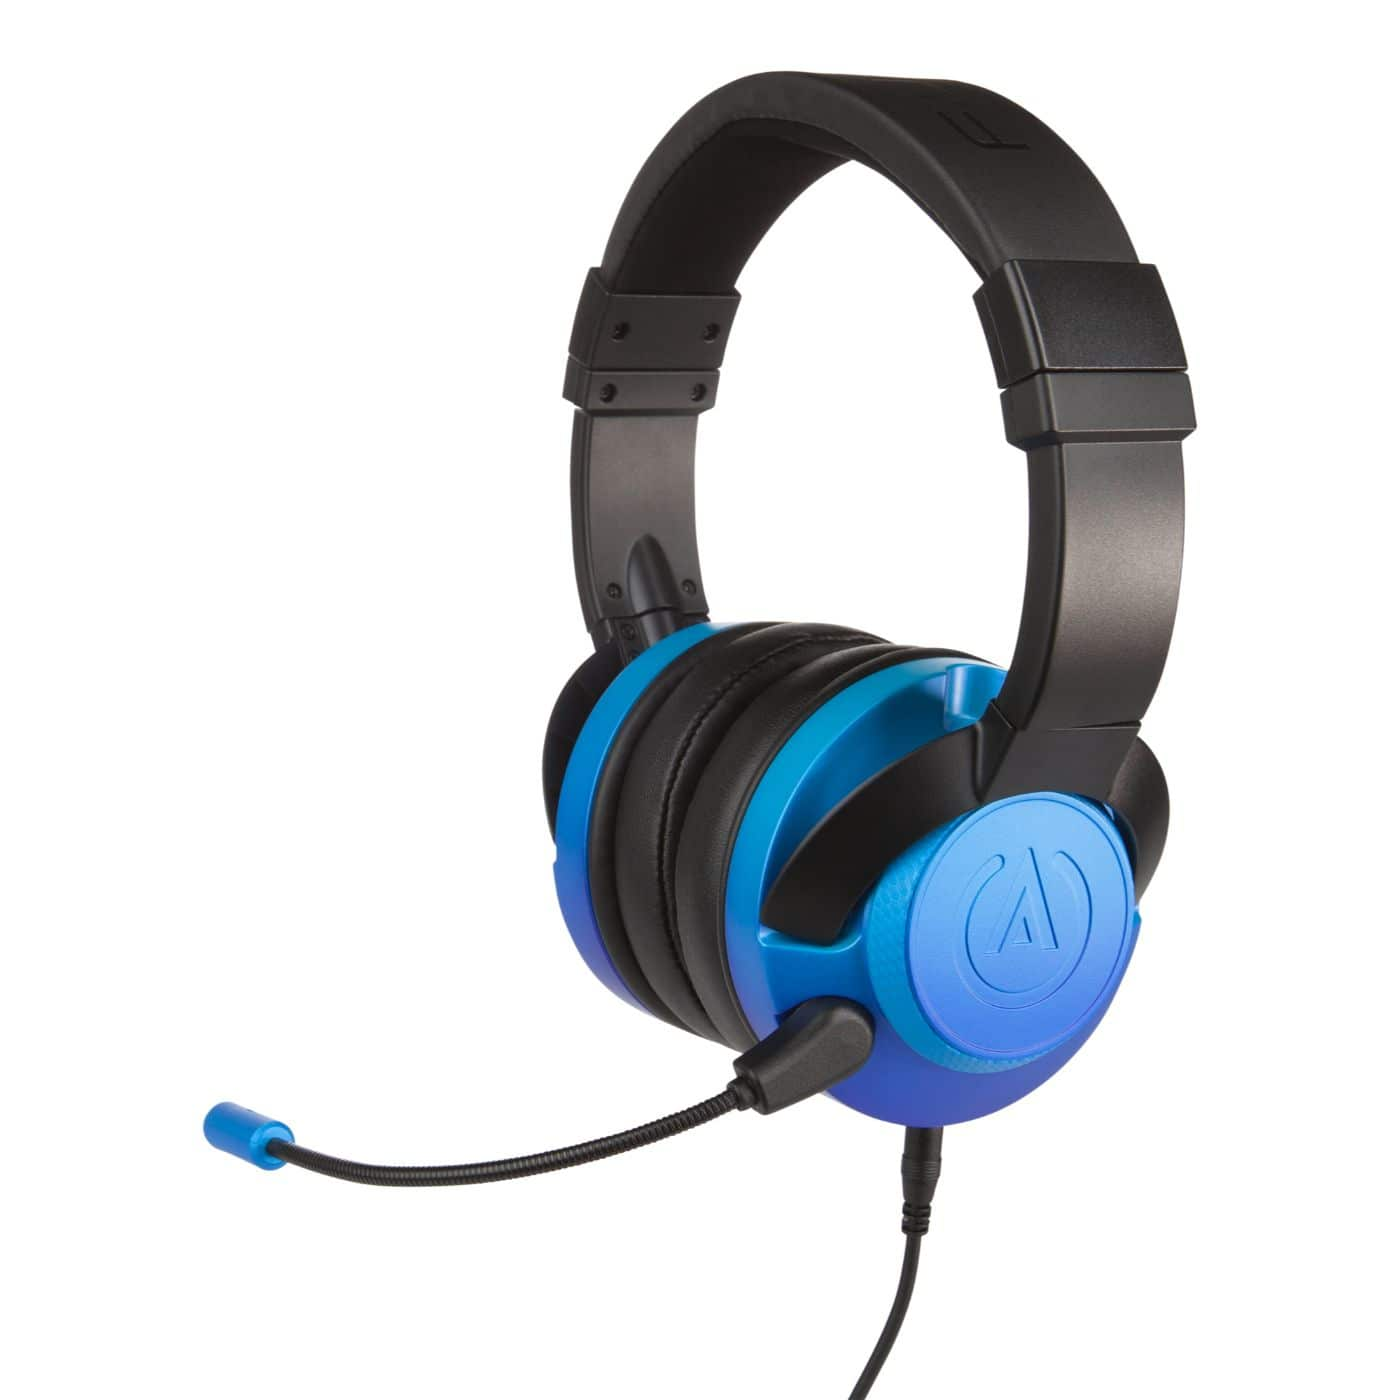 PowerA Fusion Gaming Headset Sapphire Fade Gaming Kopfhörer Xbox, PS4, Switch, PC, Mac, Mobile kabelgebunden für 39,99 Euro